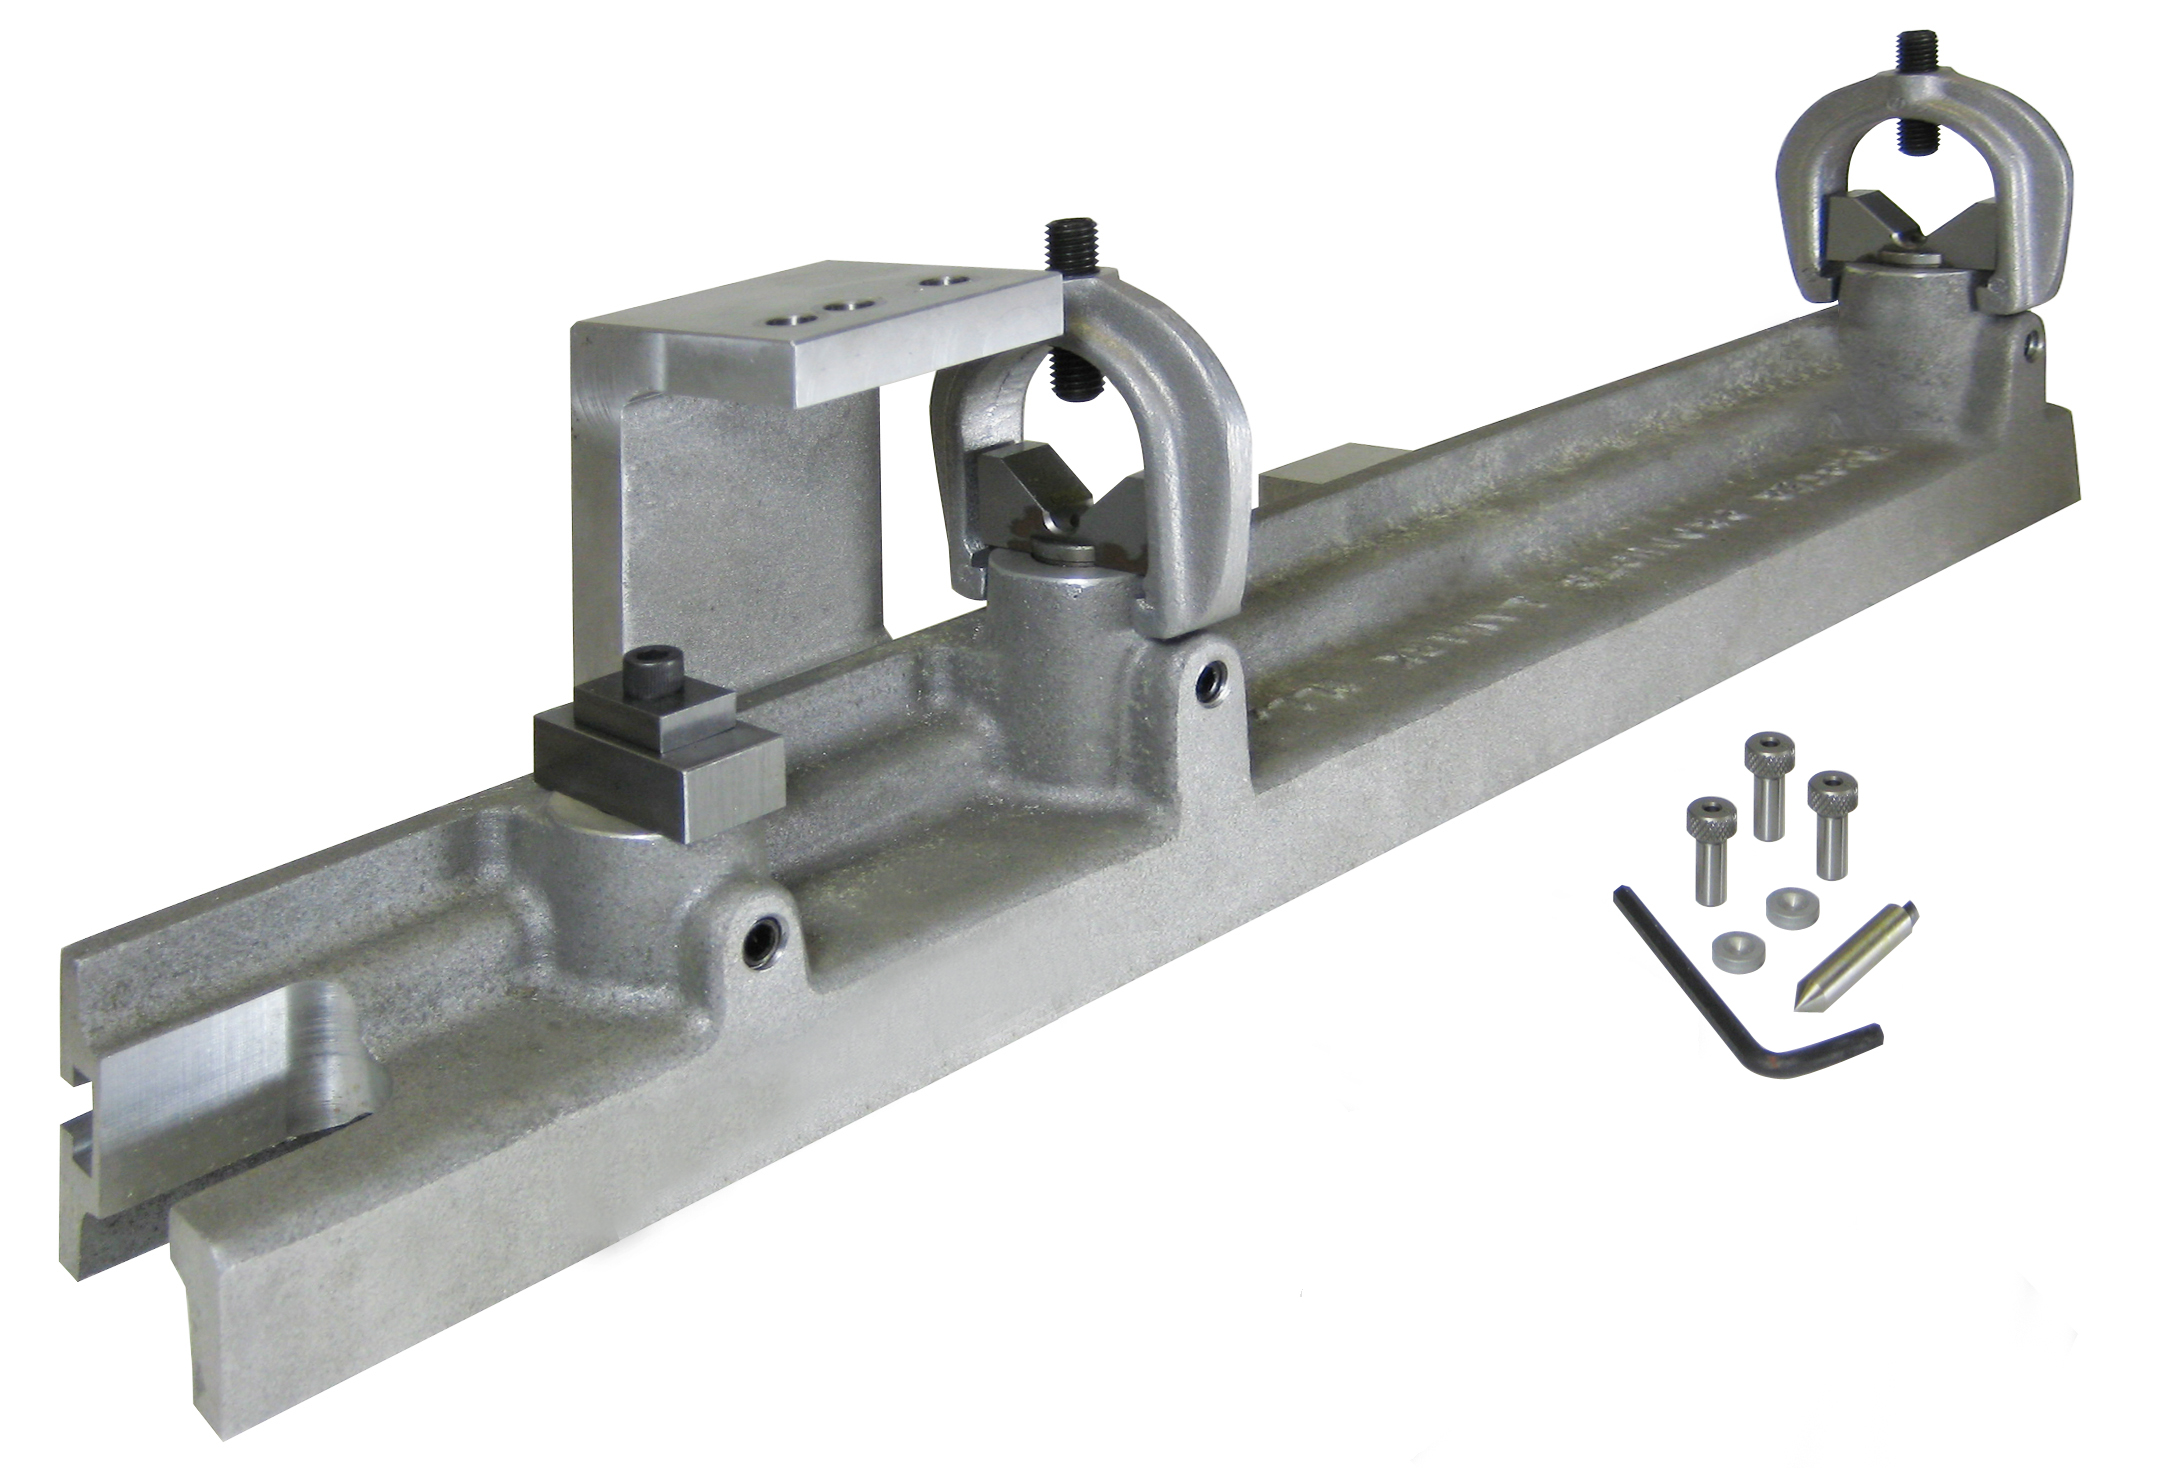 Universal Sight Mounting Fixture Forster Products